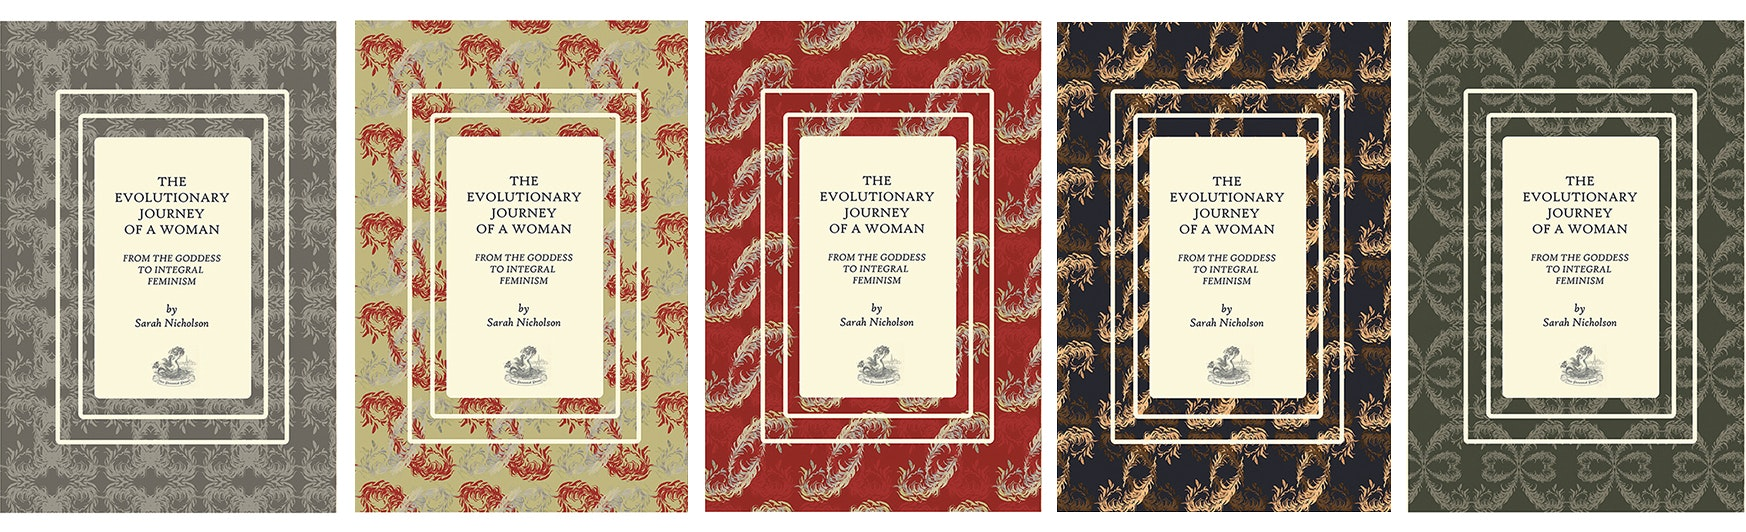 book series covers patterns